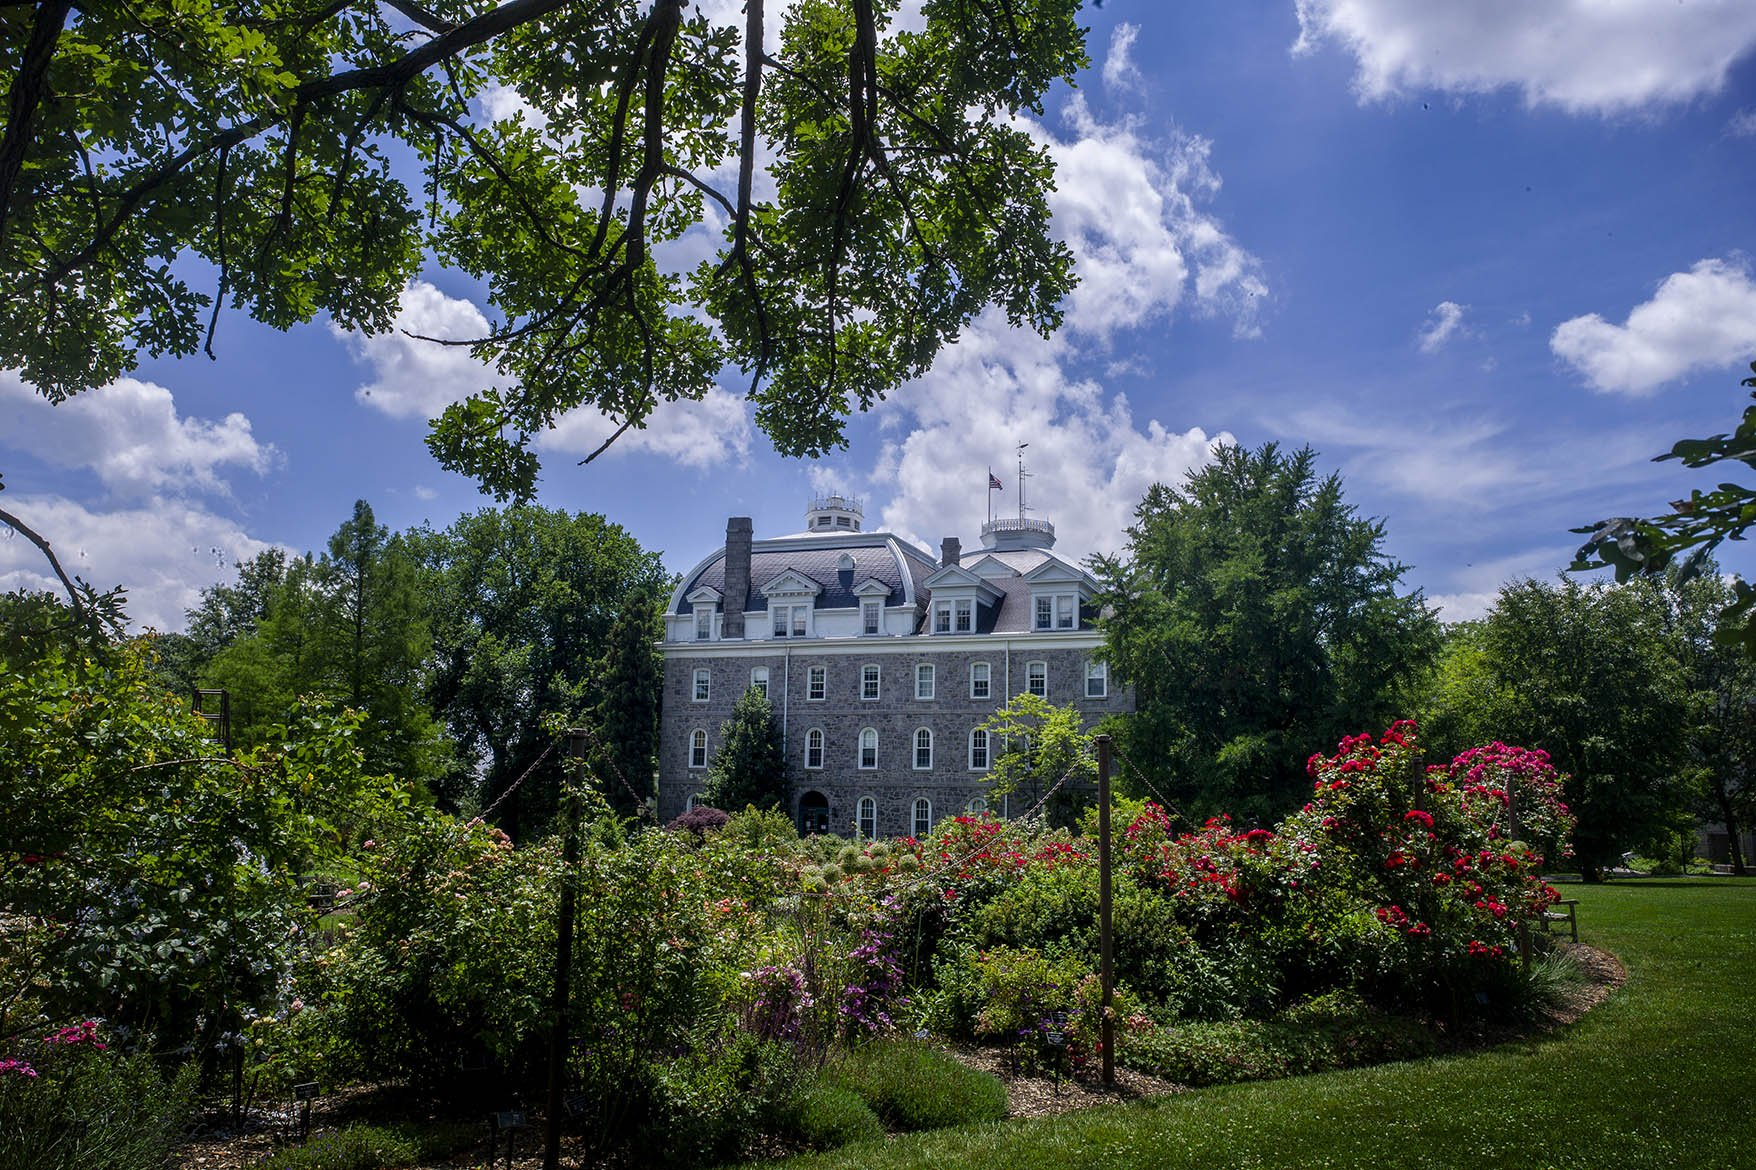 Parrish Hall in the Springtime